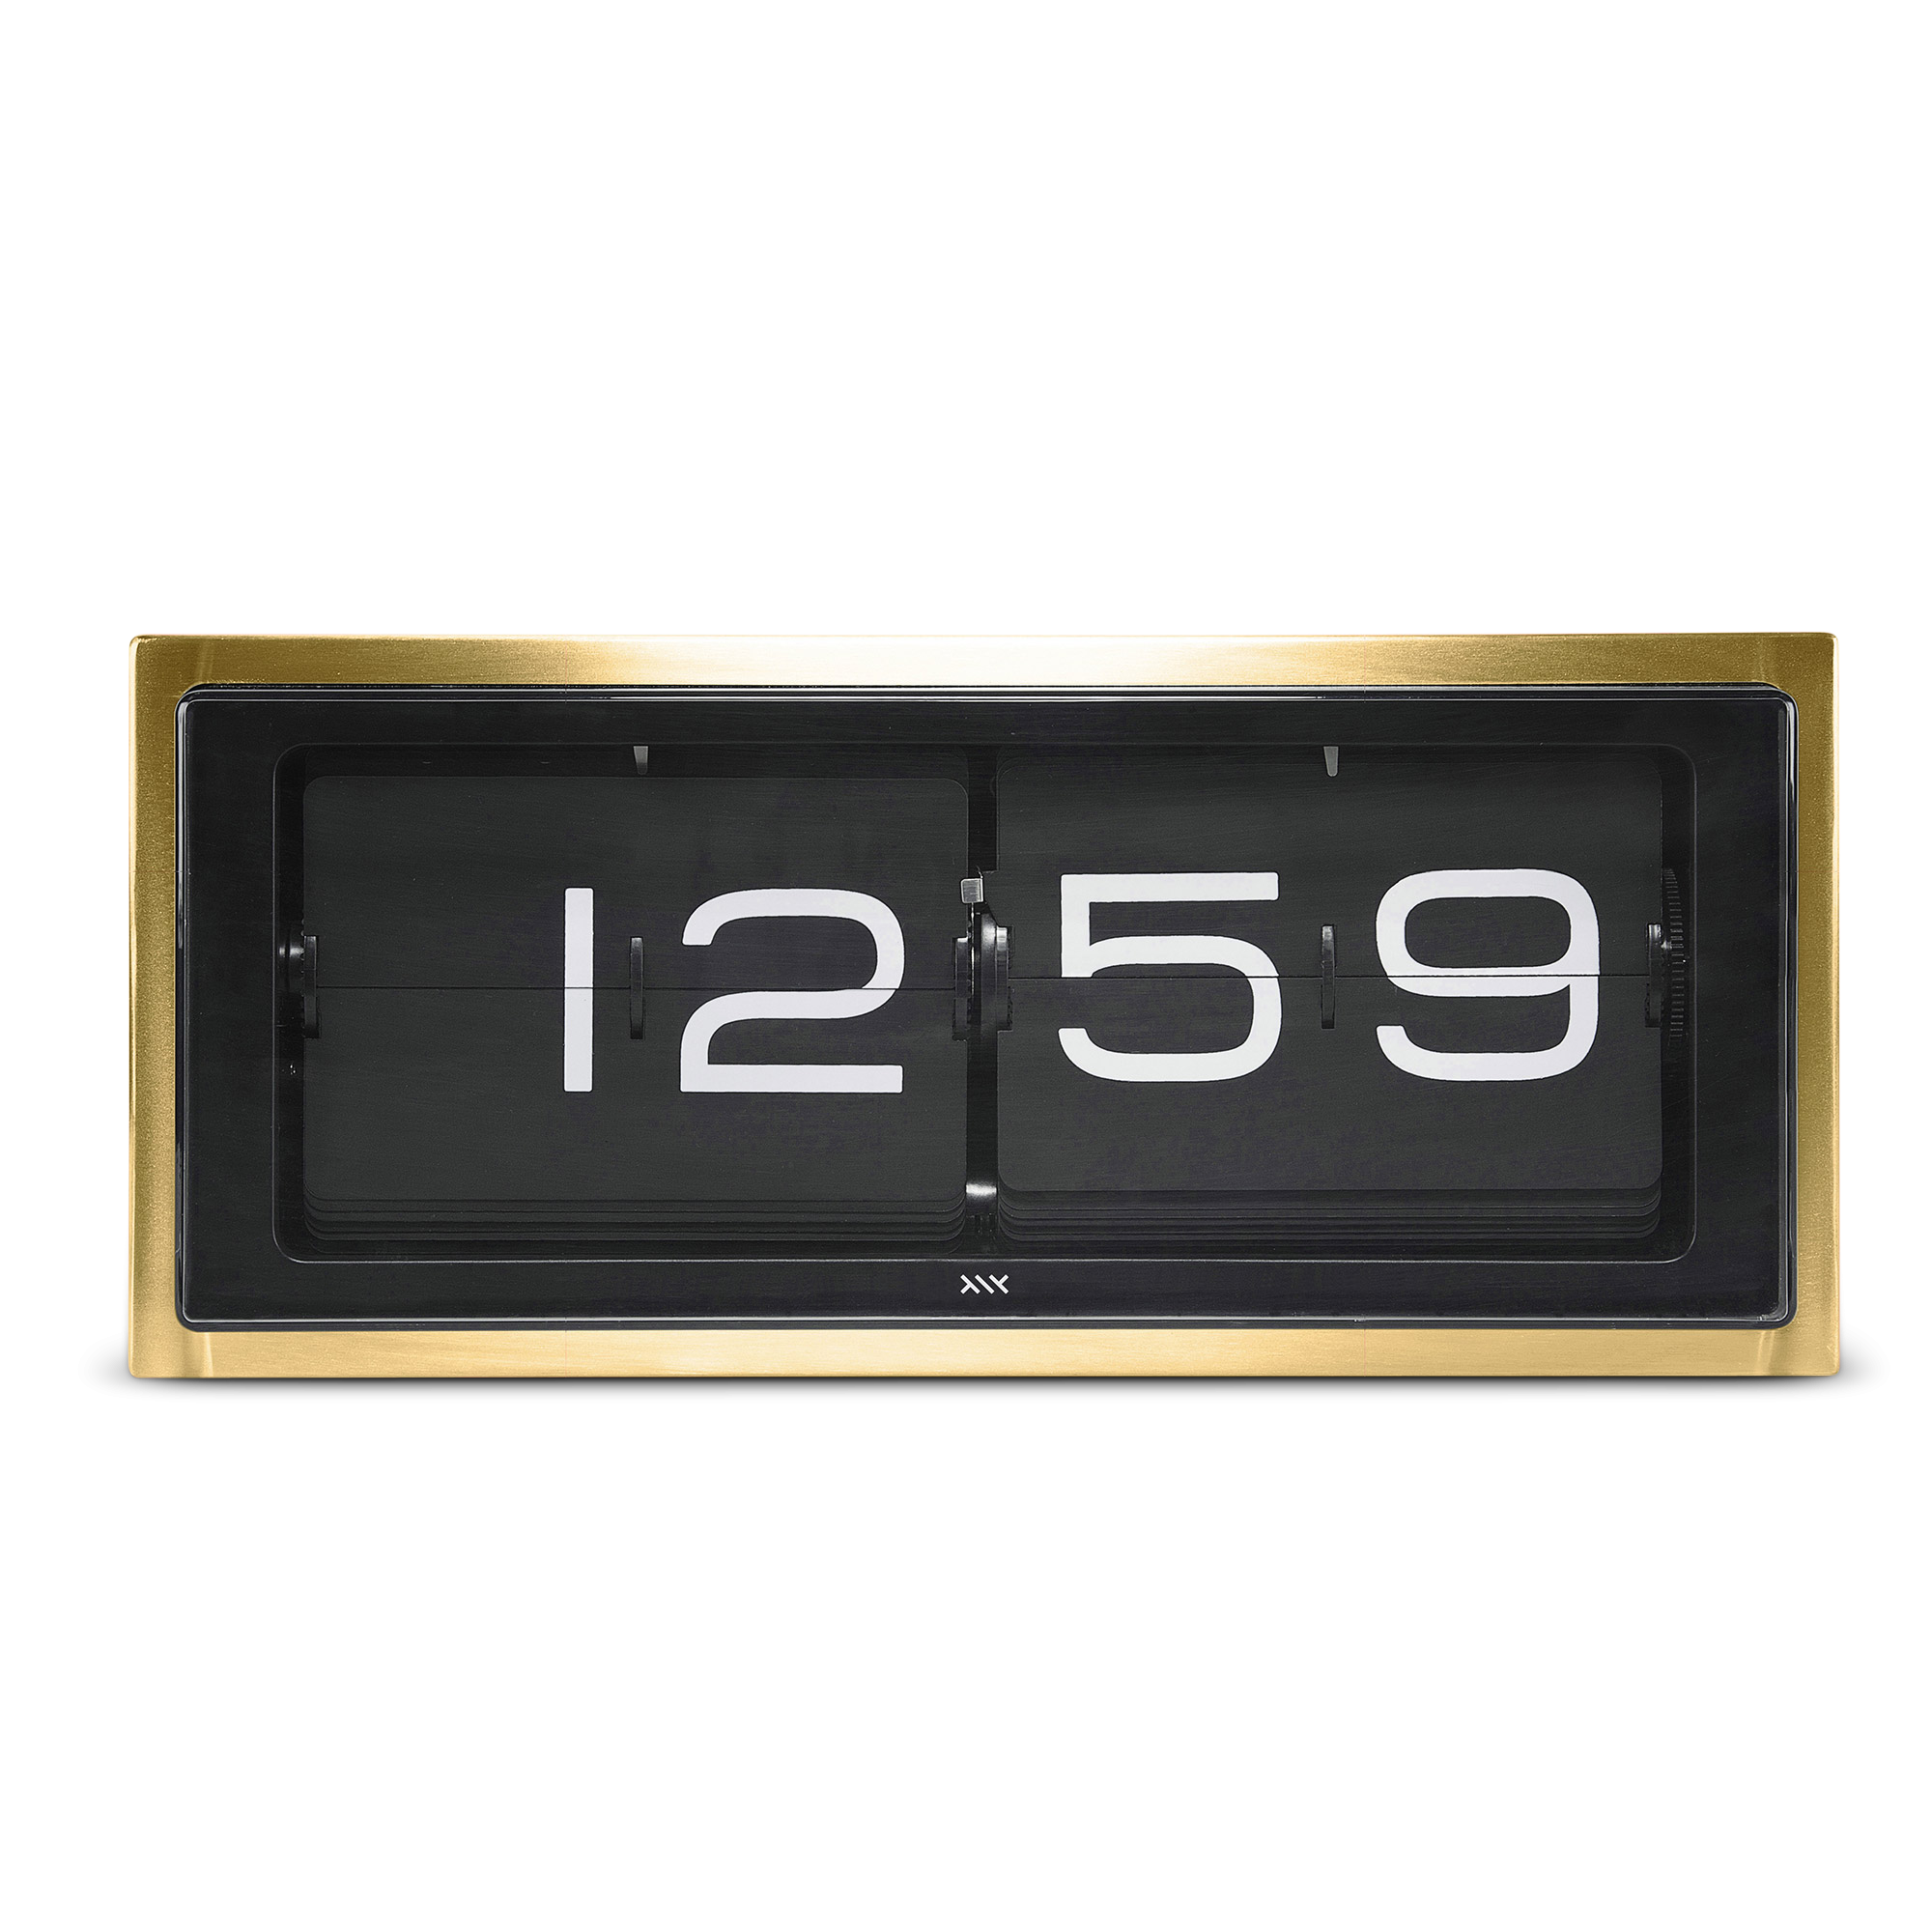 brick-table-clock-brass-black-base